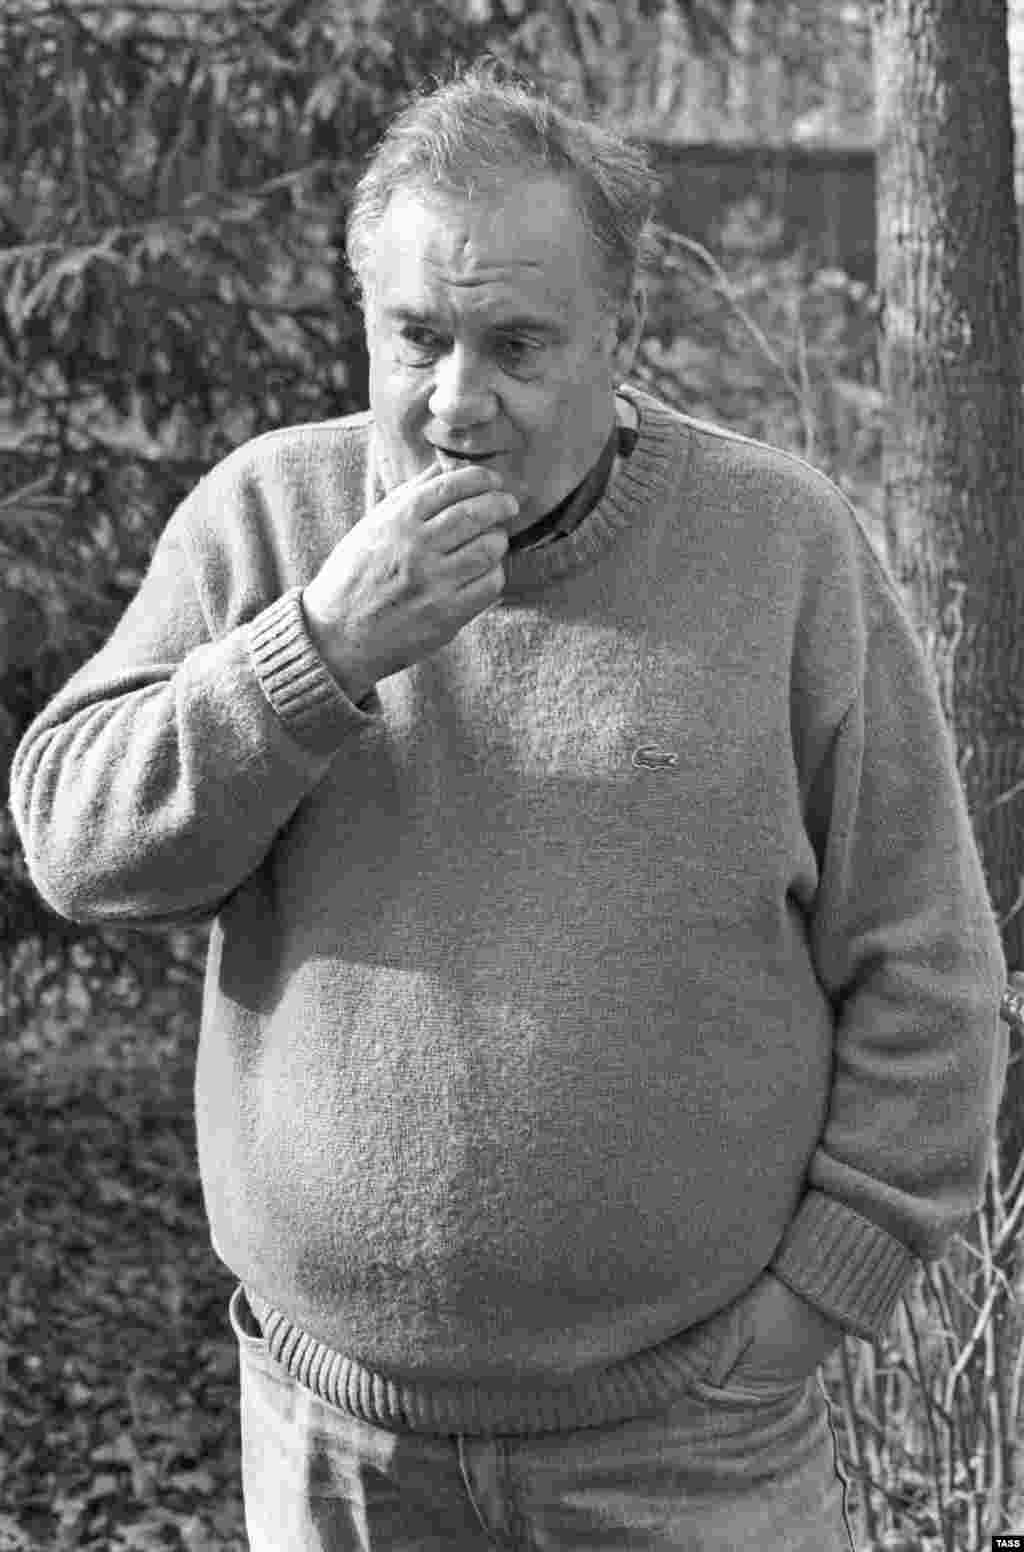 Ryazanov (shown in 1991) continued working after the Soviet Union fell apart, although his later films never achieved the same cult status.